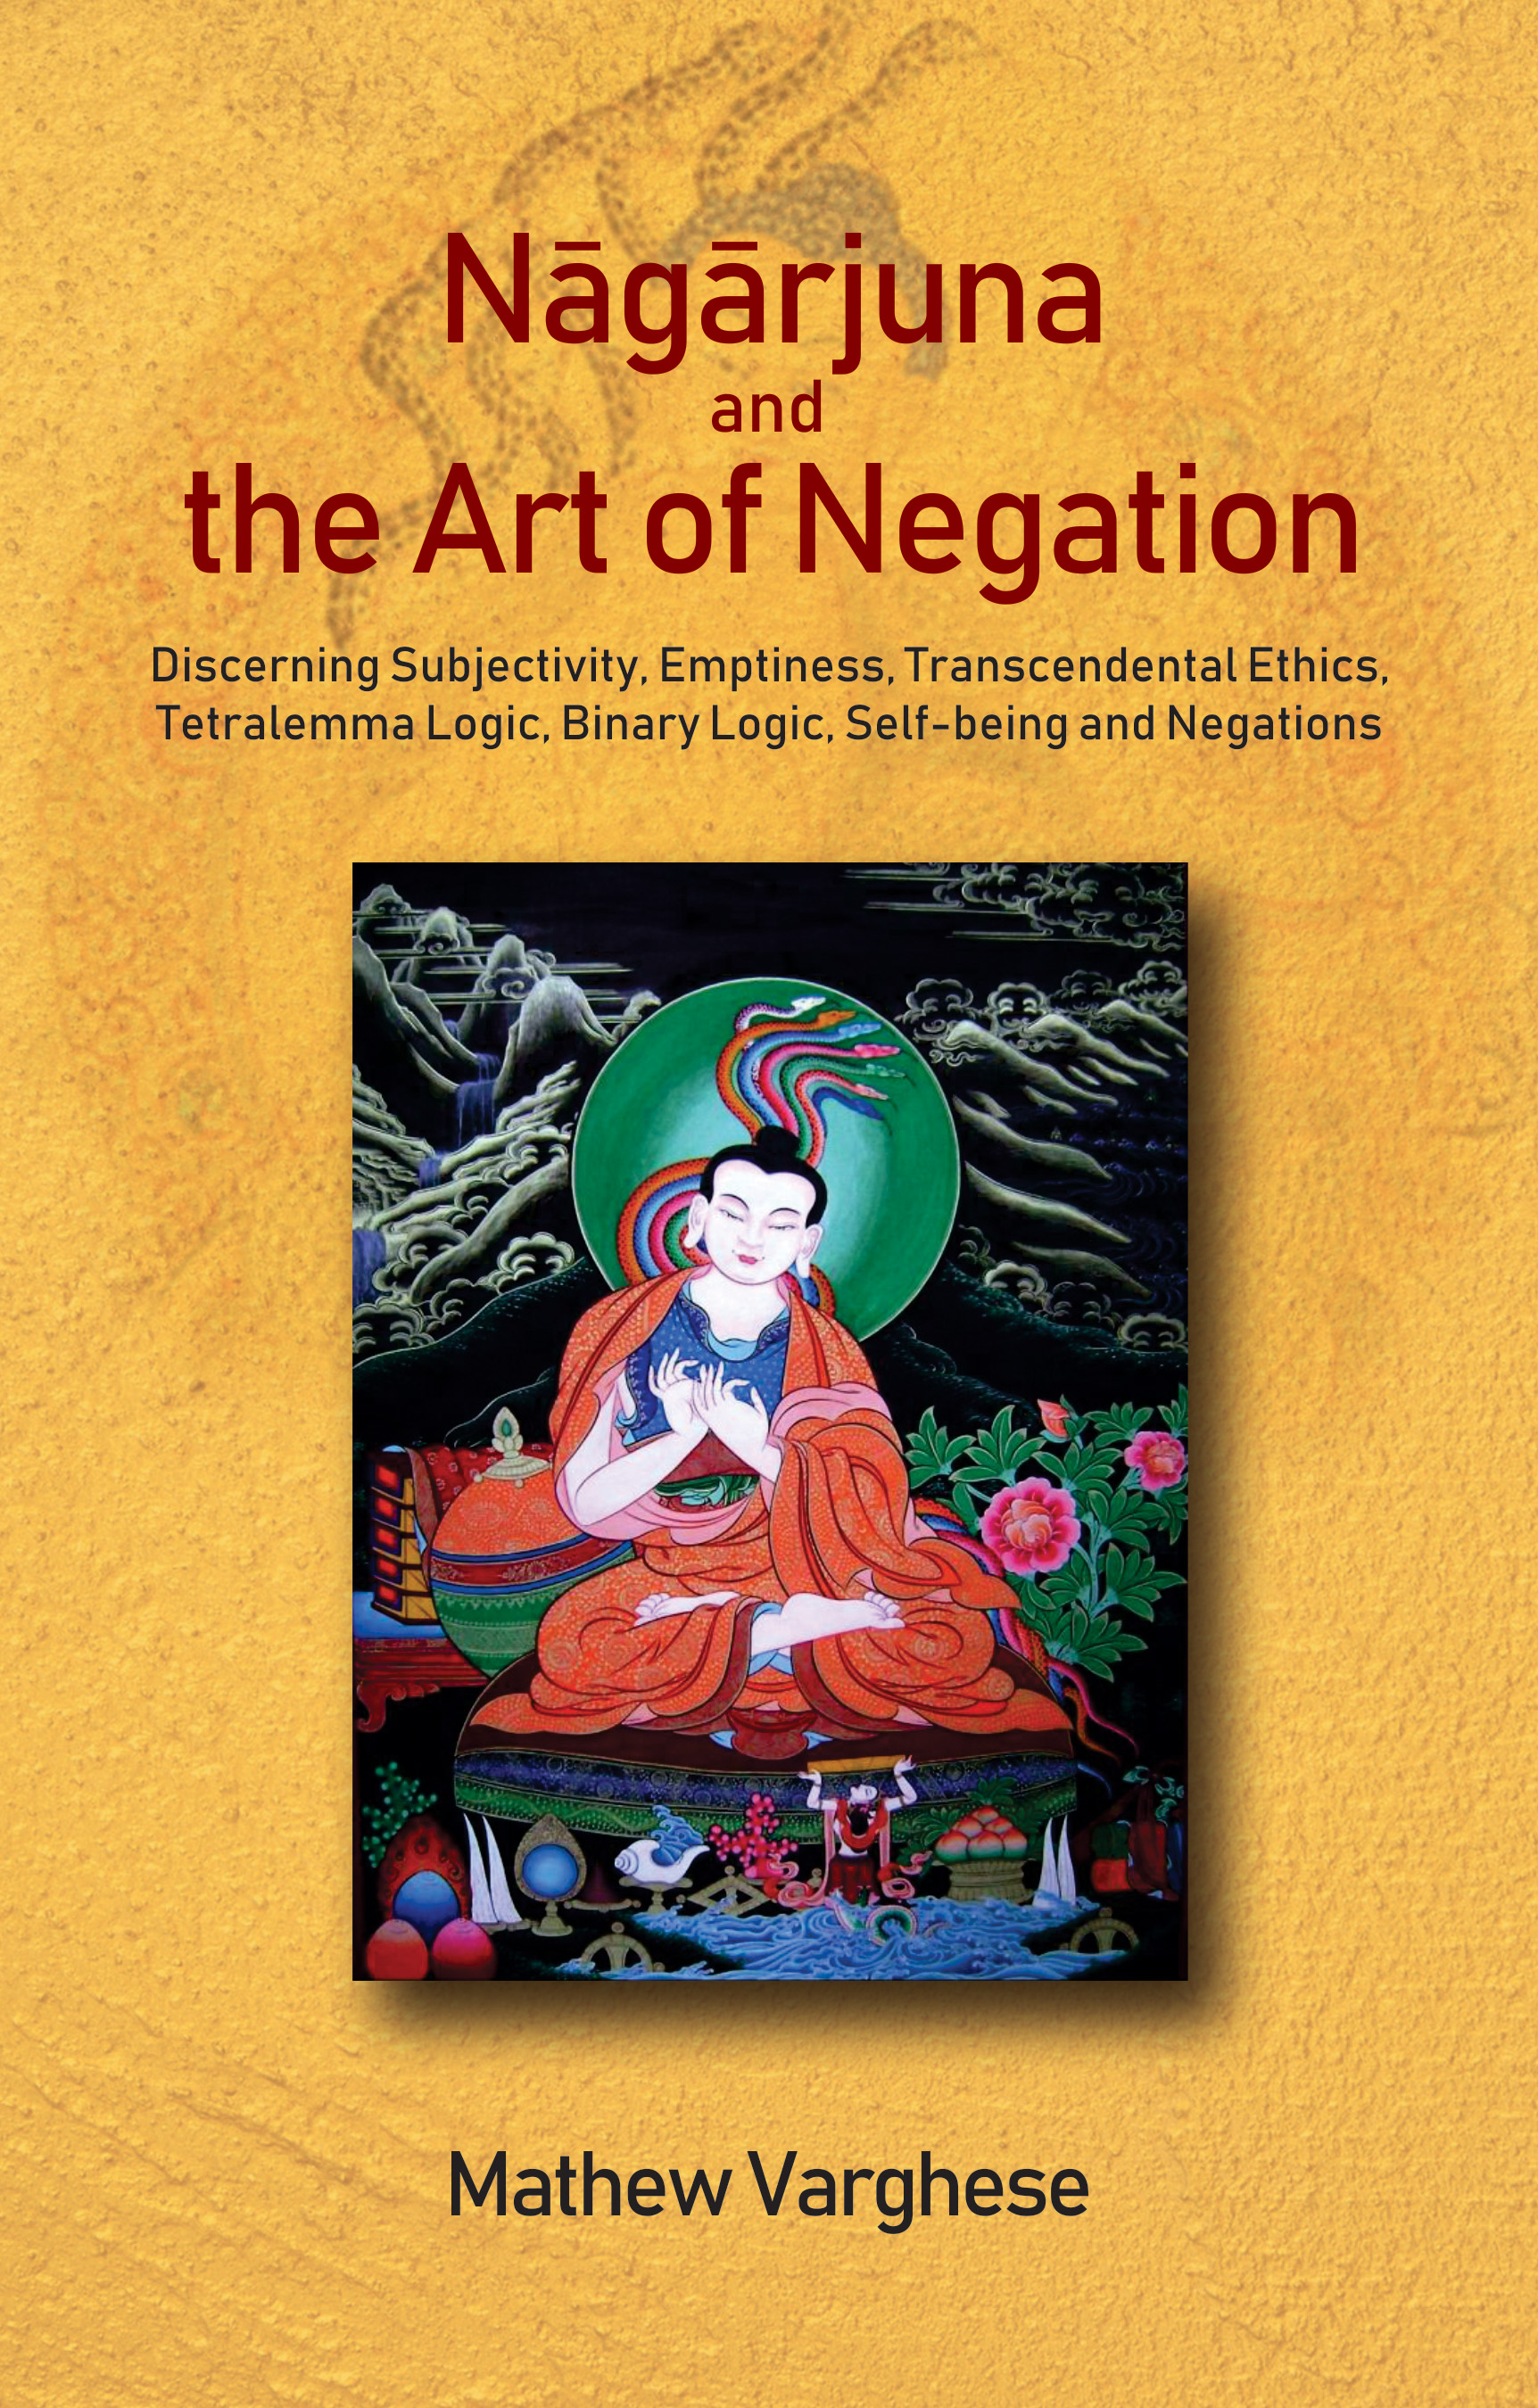 Image for Nagarjuna and the Art of Negation: Discerning Subjectivity, Emptiness, Transcendental Ethics, Tetralemma Logic, Binary Logic, Self-being and Negations